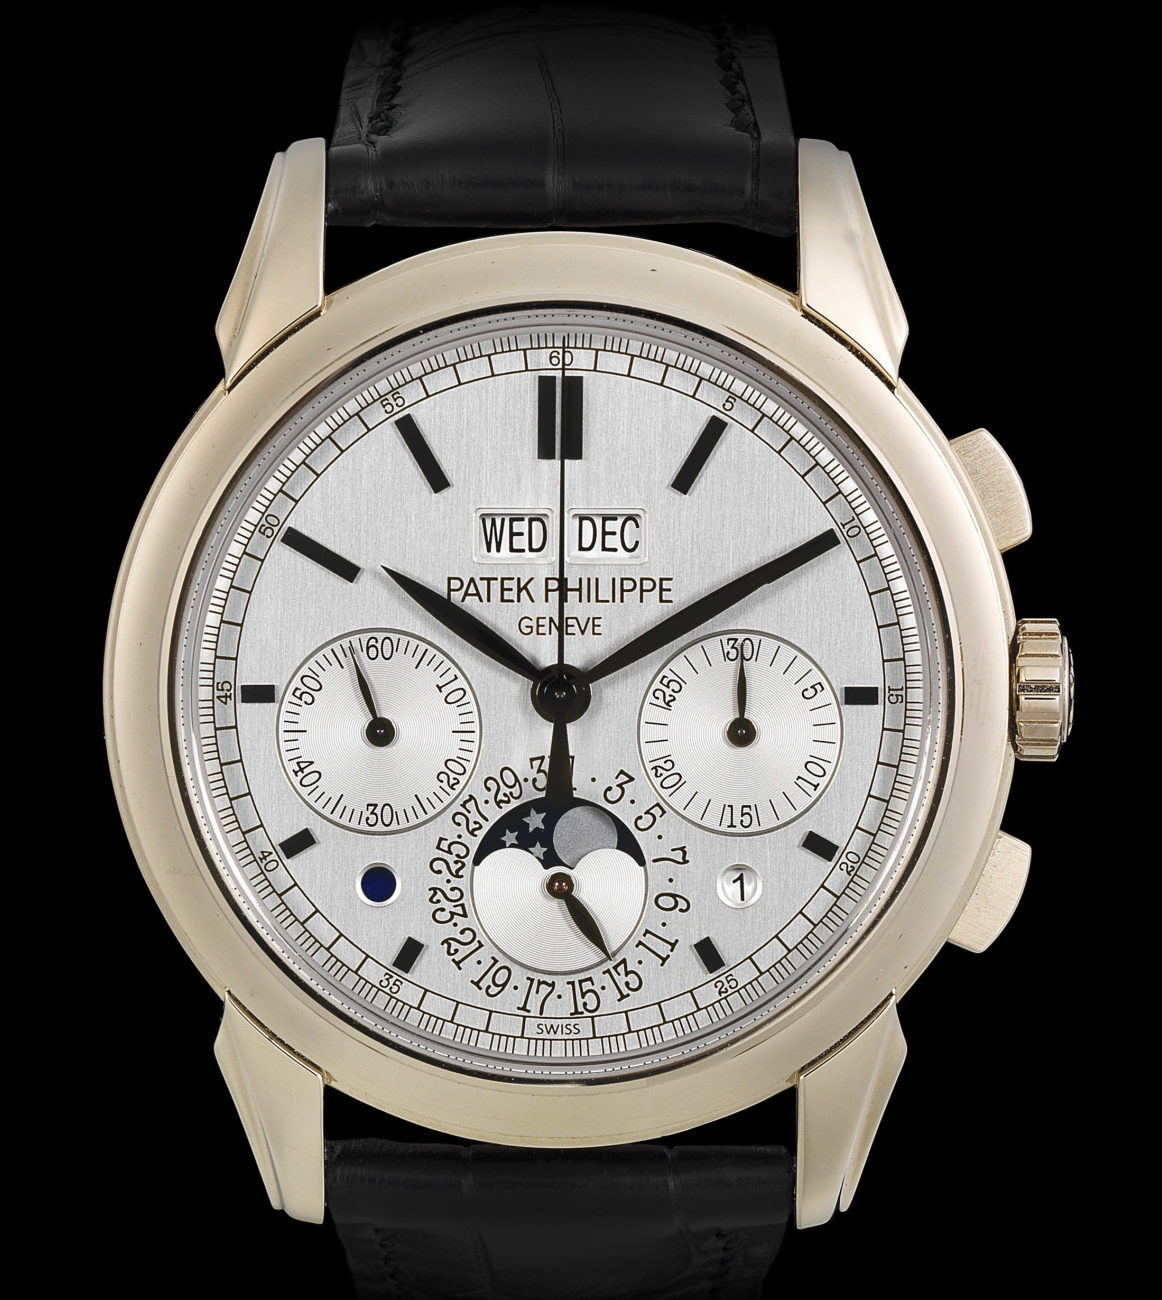 Patek Philippe. A fine 18K white gold manual wind perpetual calendar chronograph wristwatch with moon phase